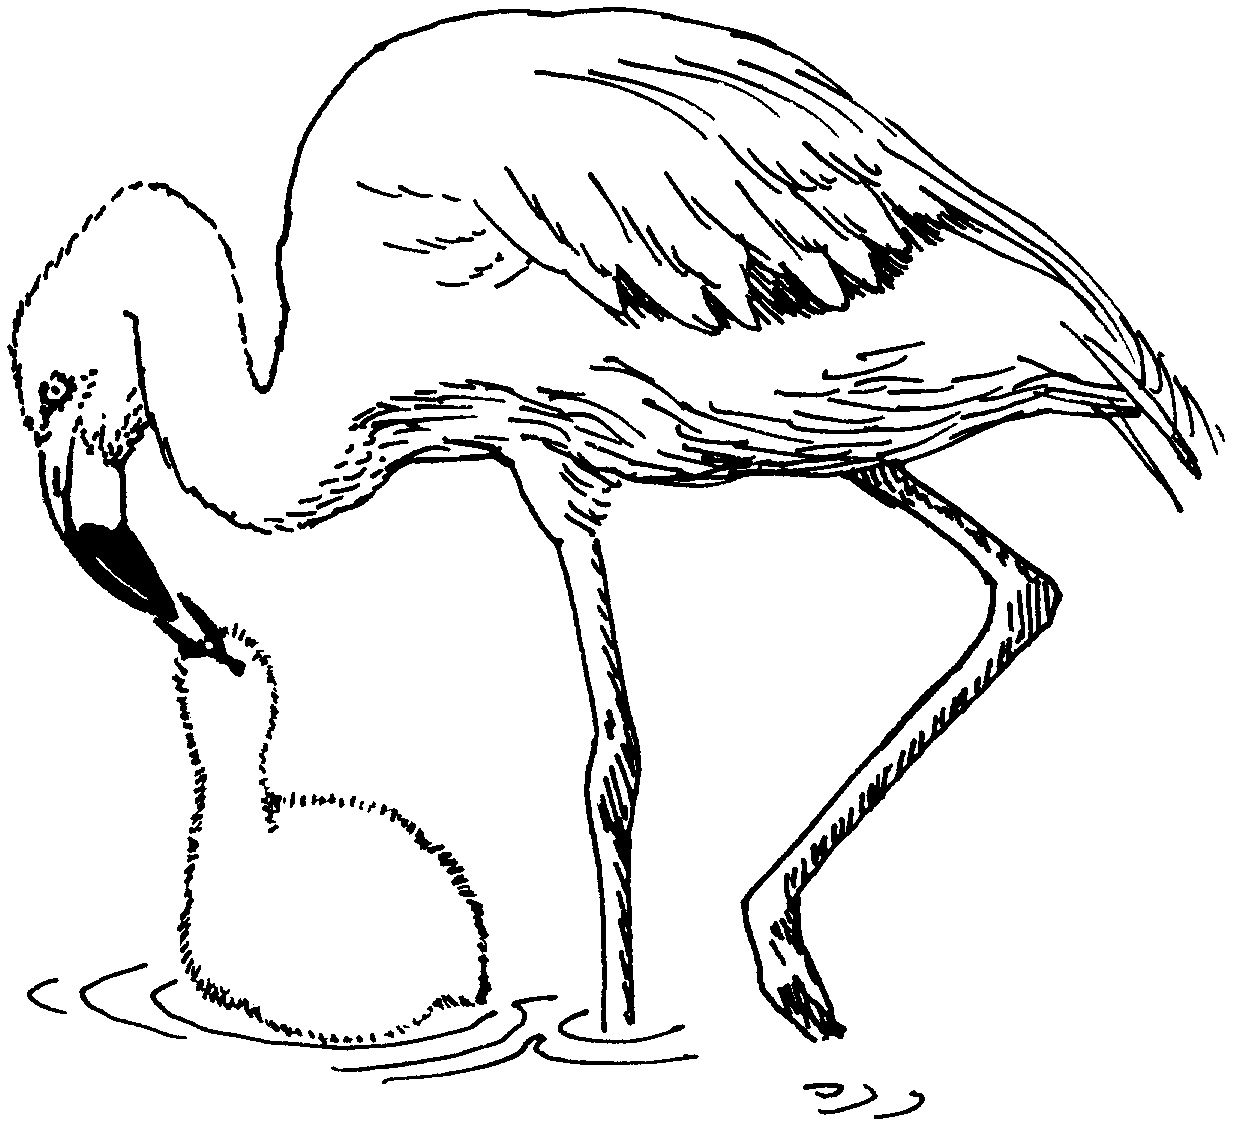 flamingo coloring pages pink flamingo coloring page at getdrawings free download pages coloring flamingo